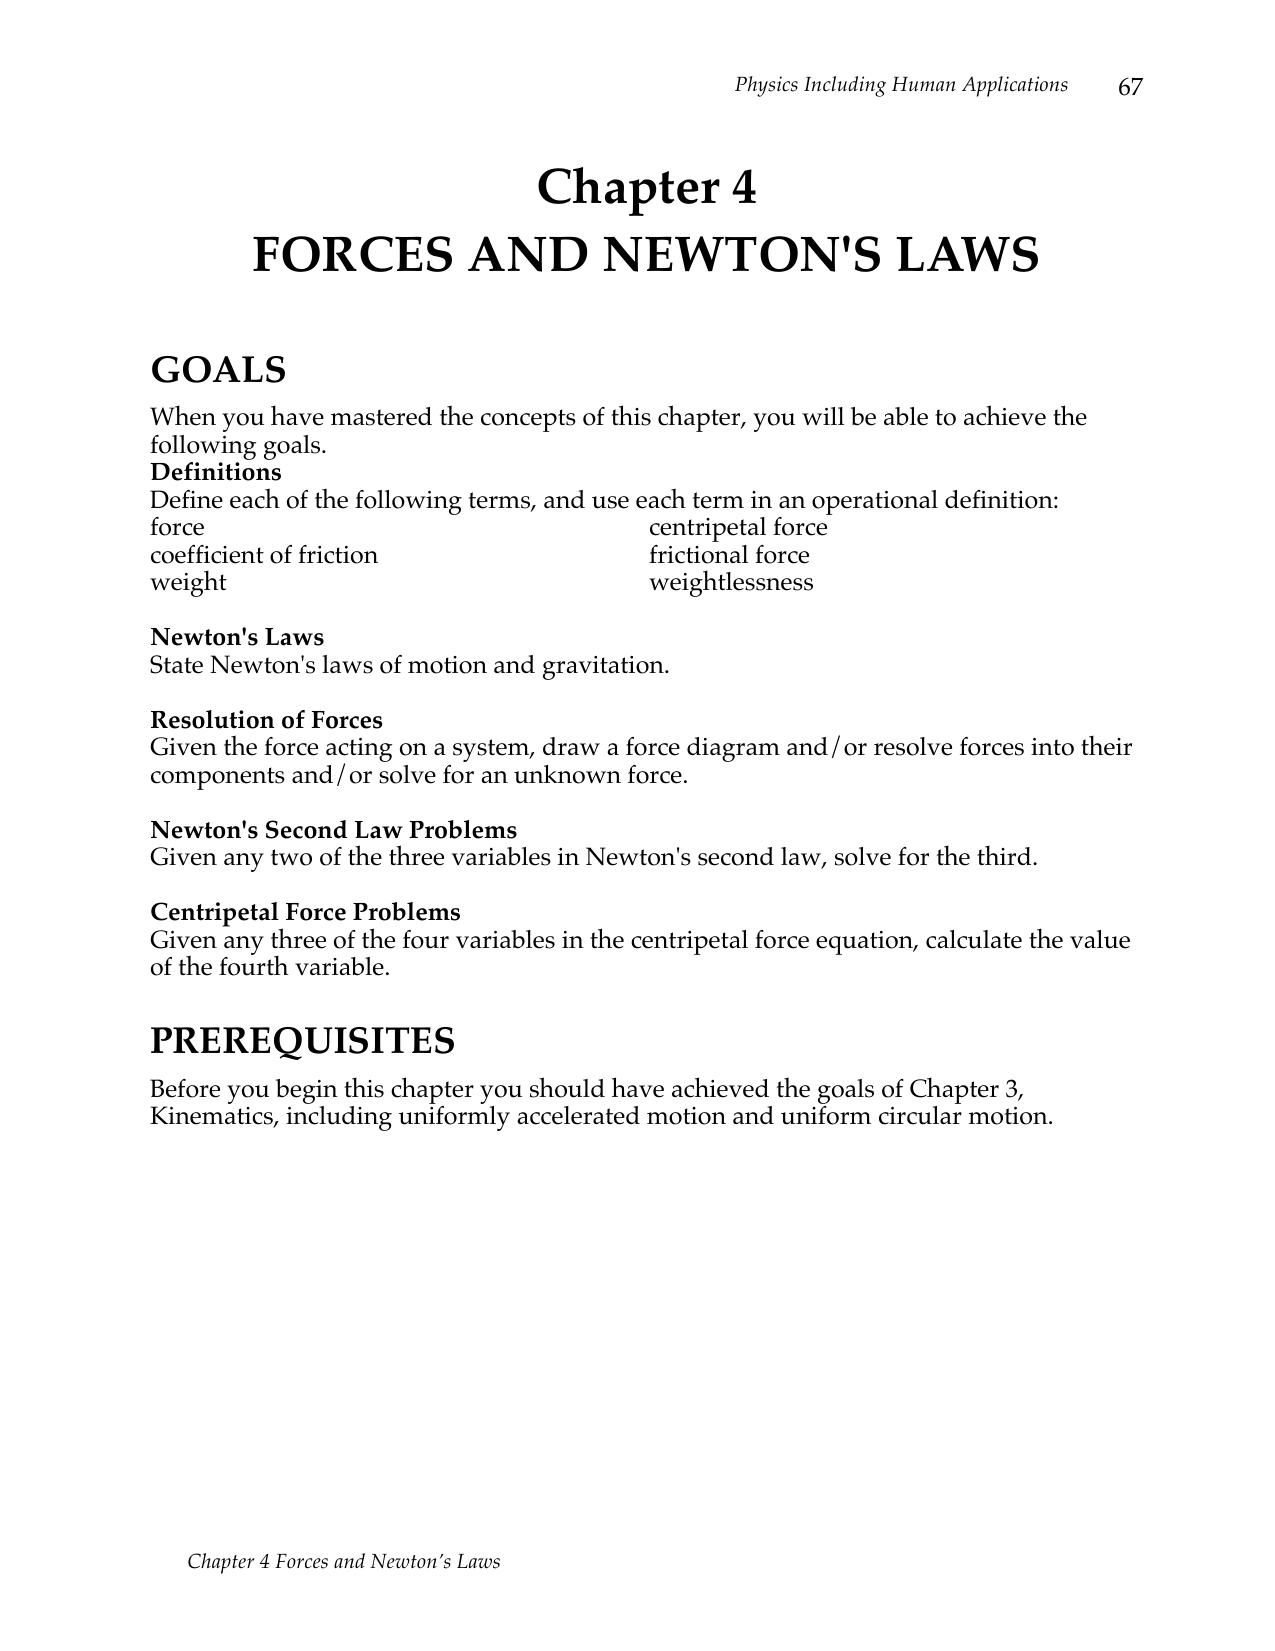 Chapter 4 Forces And Newtons Laws Thus The Drawforce Curve Would Be A Straight Line Static